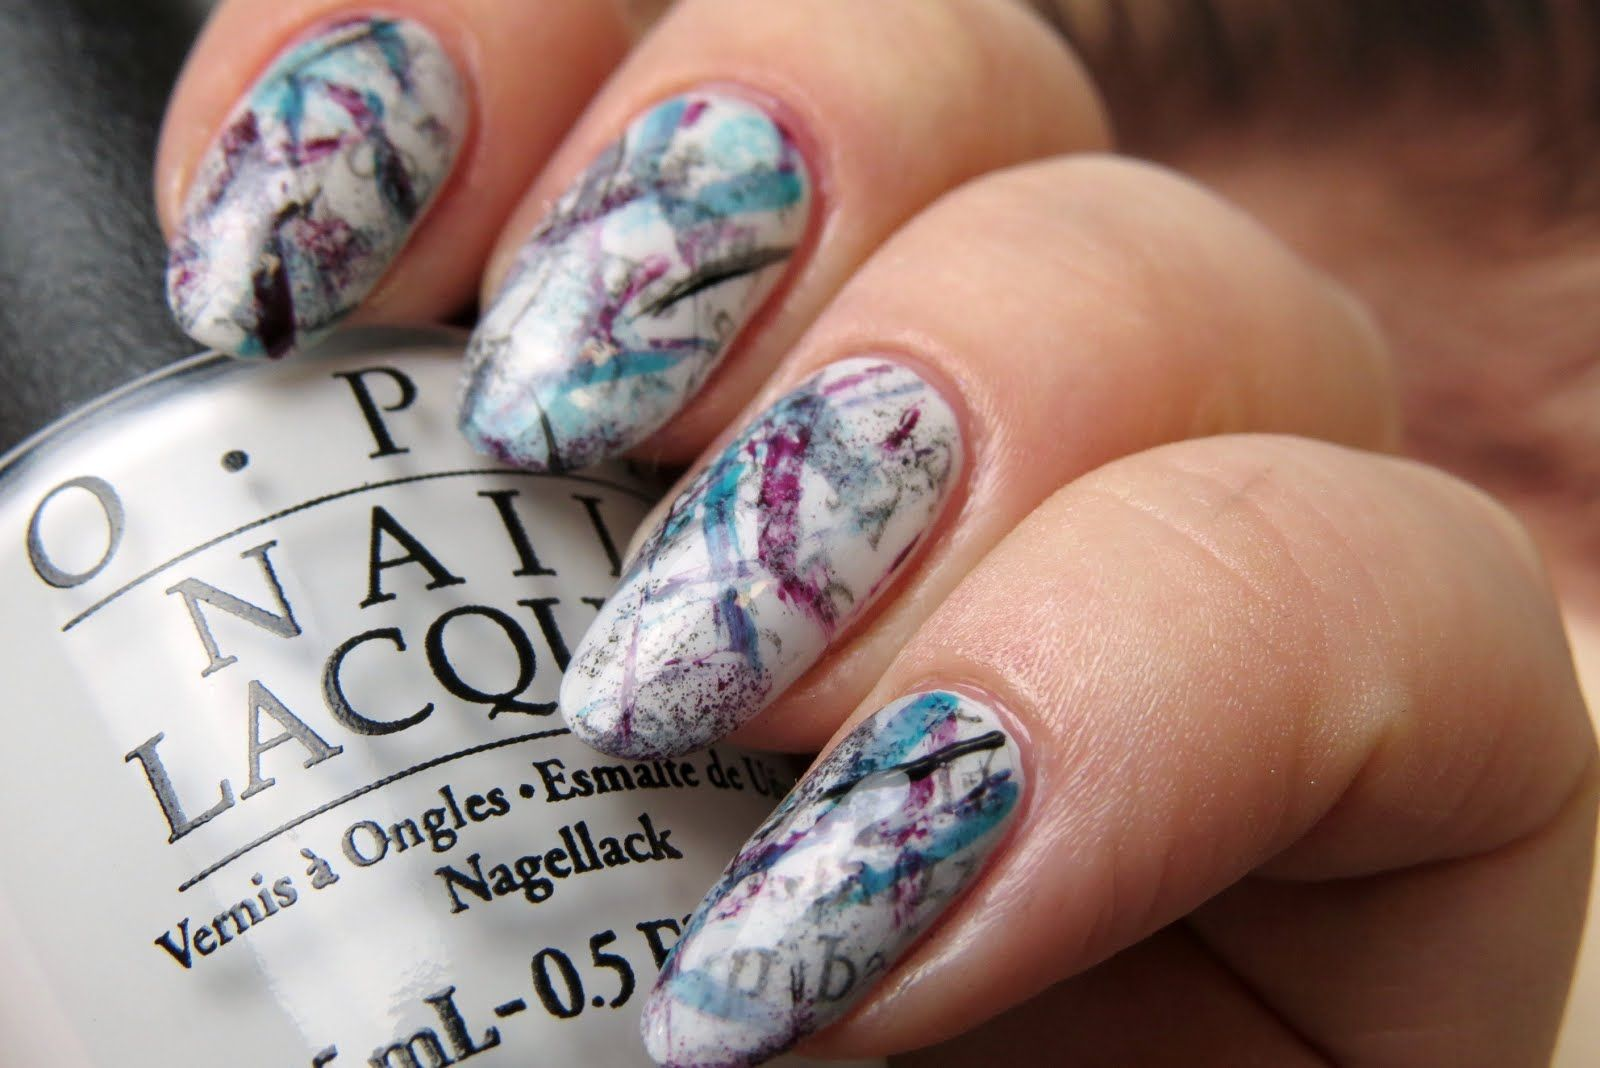 Graffiti Nail Art Design with Newspaper | Kaitlyn Elisabeth Beauty ...